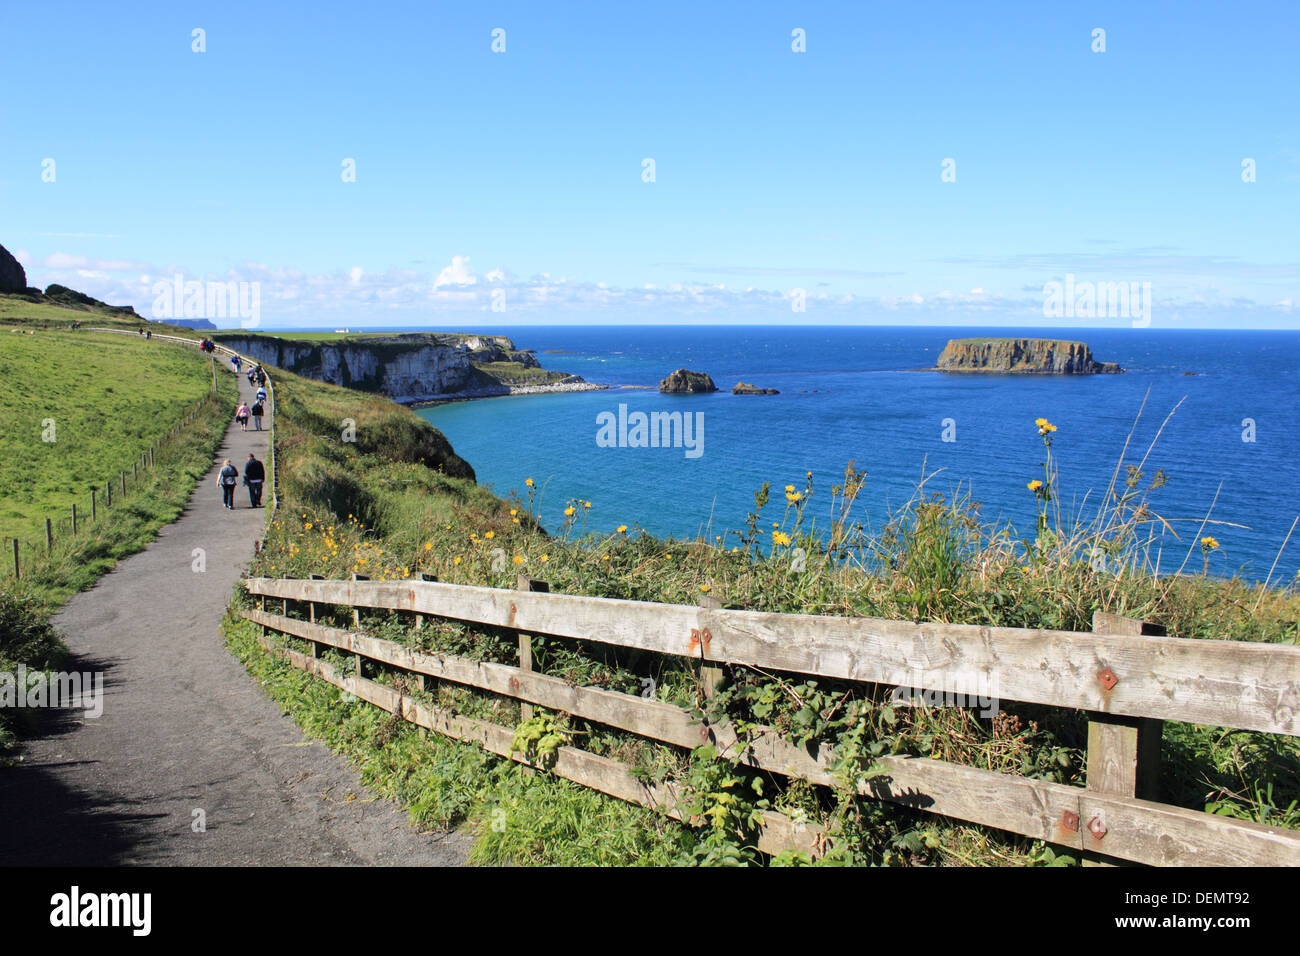 Footpath to Carrick-a-Rede, rope bridge on the Causeway Coastal Route, Northern Ireland. - Stock Image